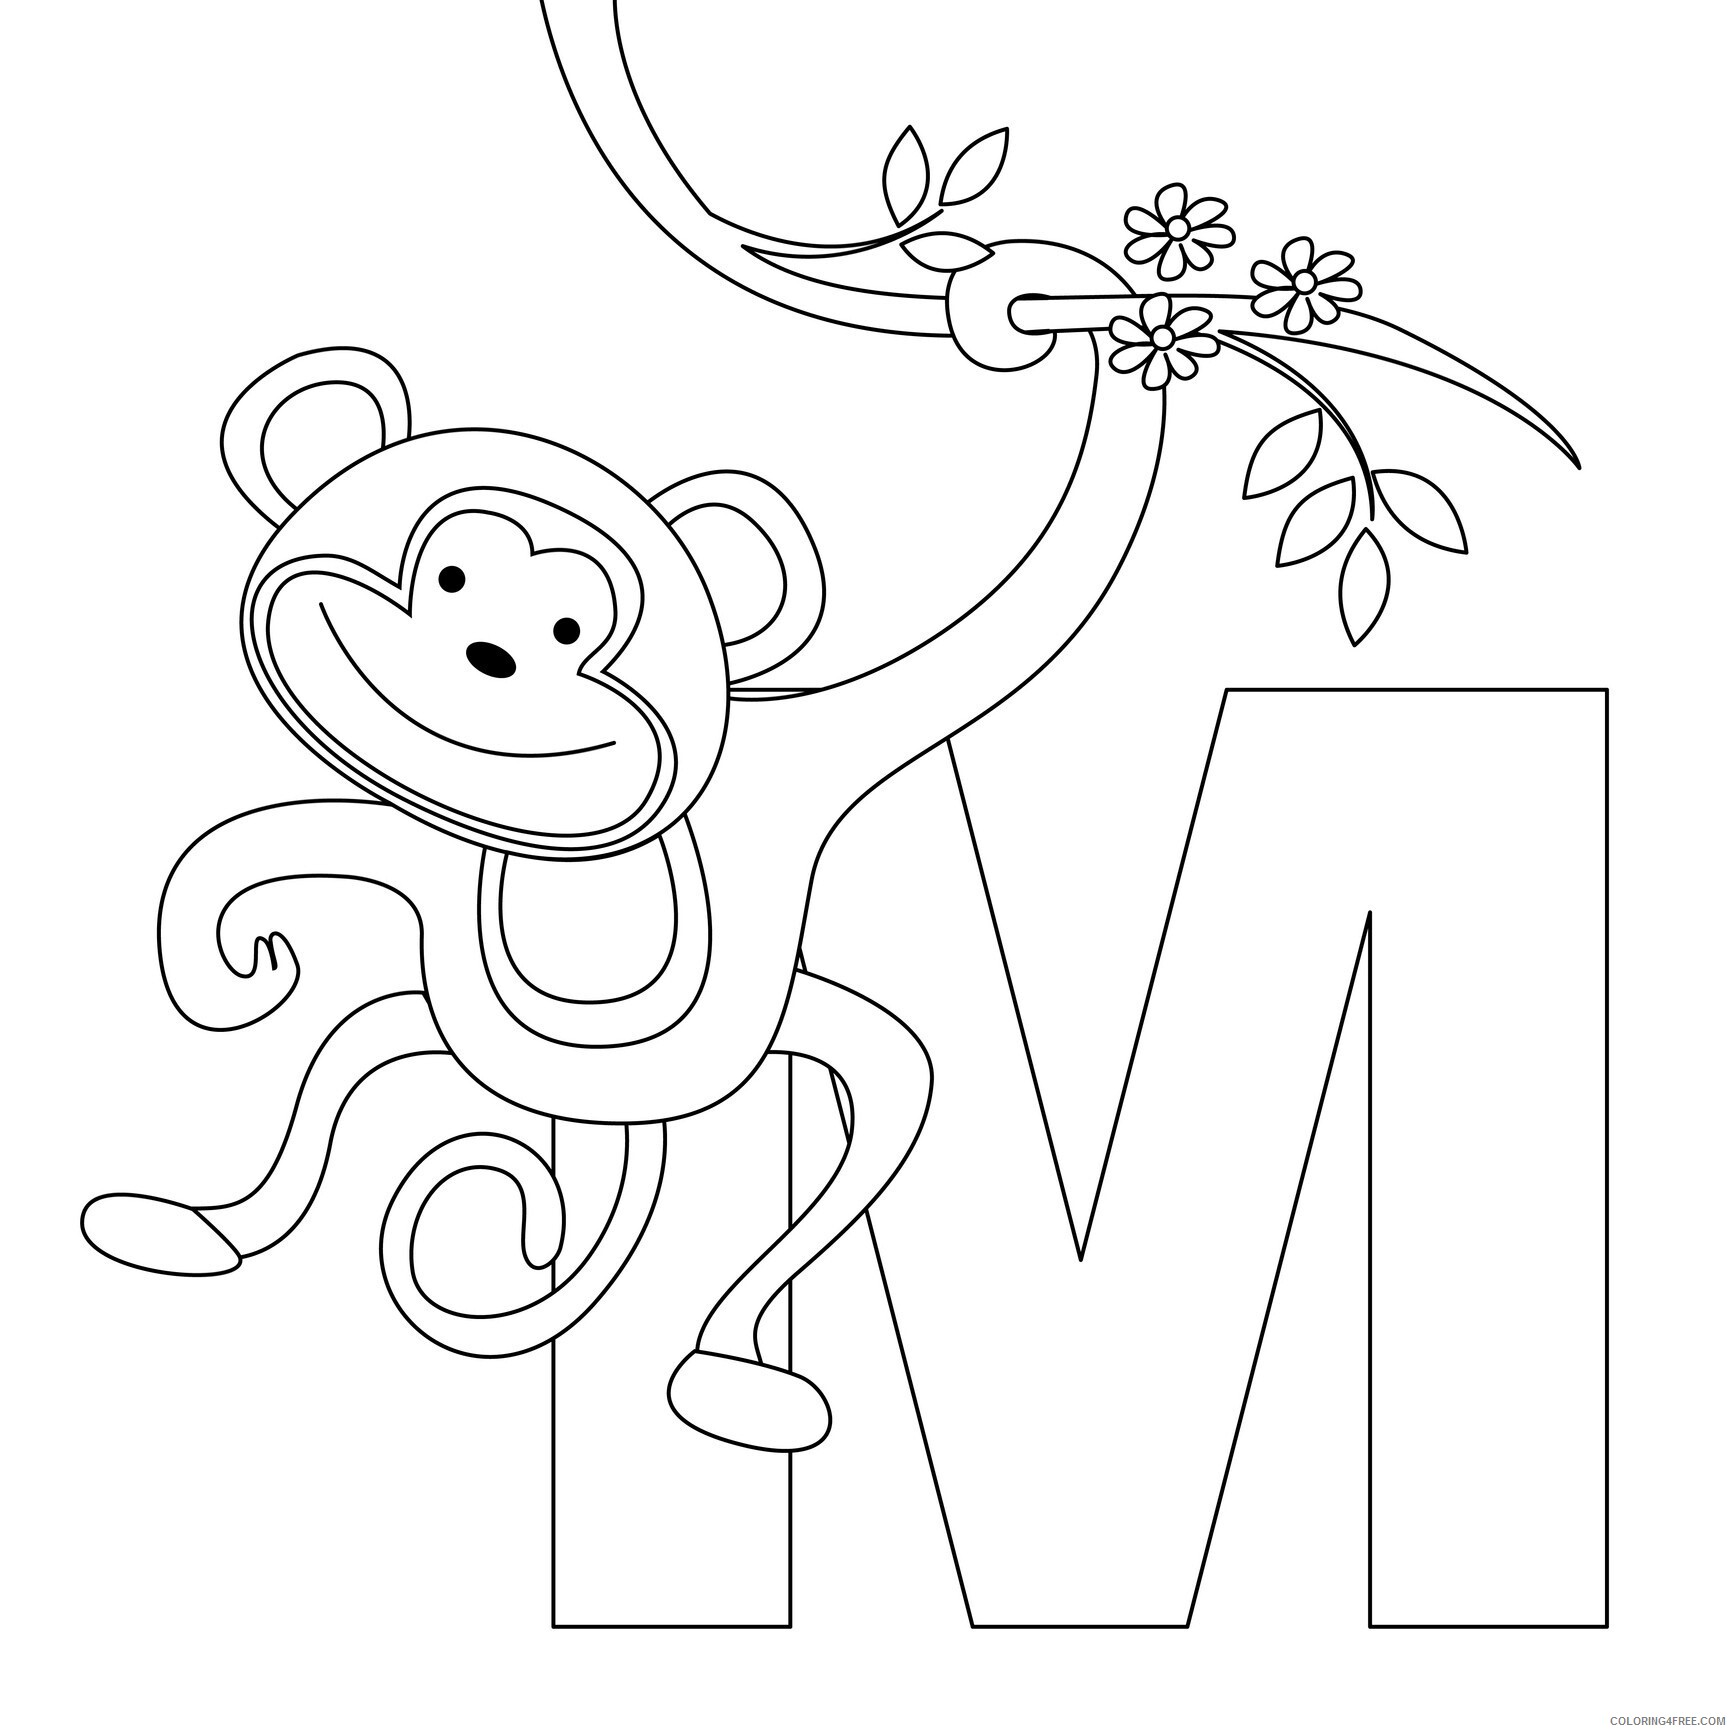 Monkey Coloring Pages Animal Printable Sheets of Cute Monkeys 2021 3290 Coloring4free